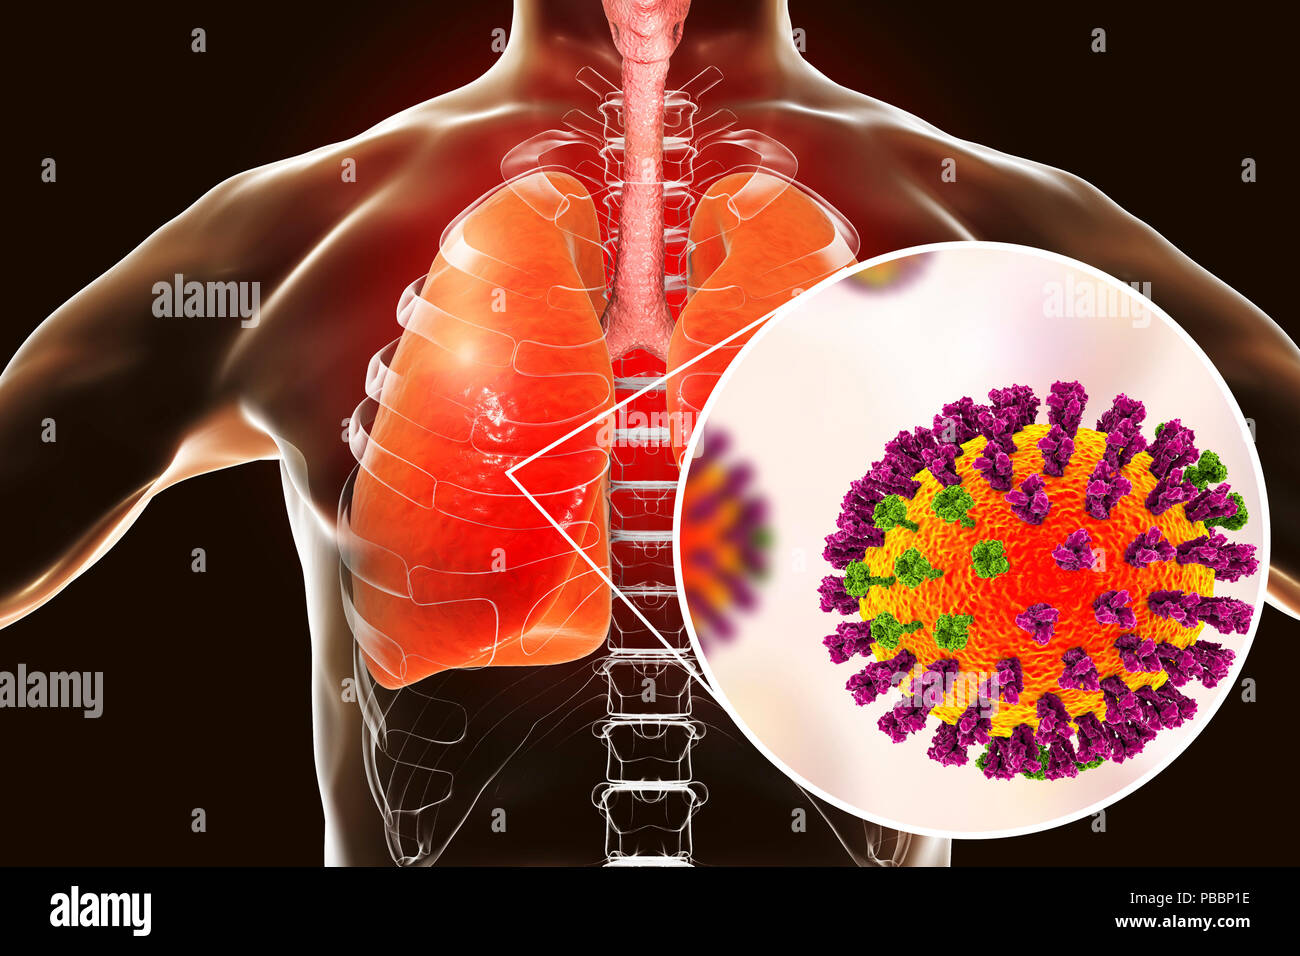 Pneumonia caused by flu, computer illustration. Pneumonia is one of the common complications of a flu infection. - Stock Image